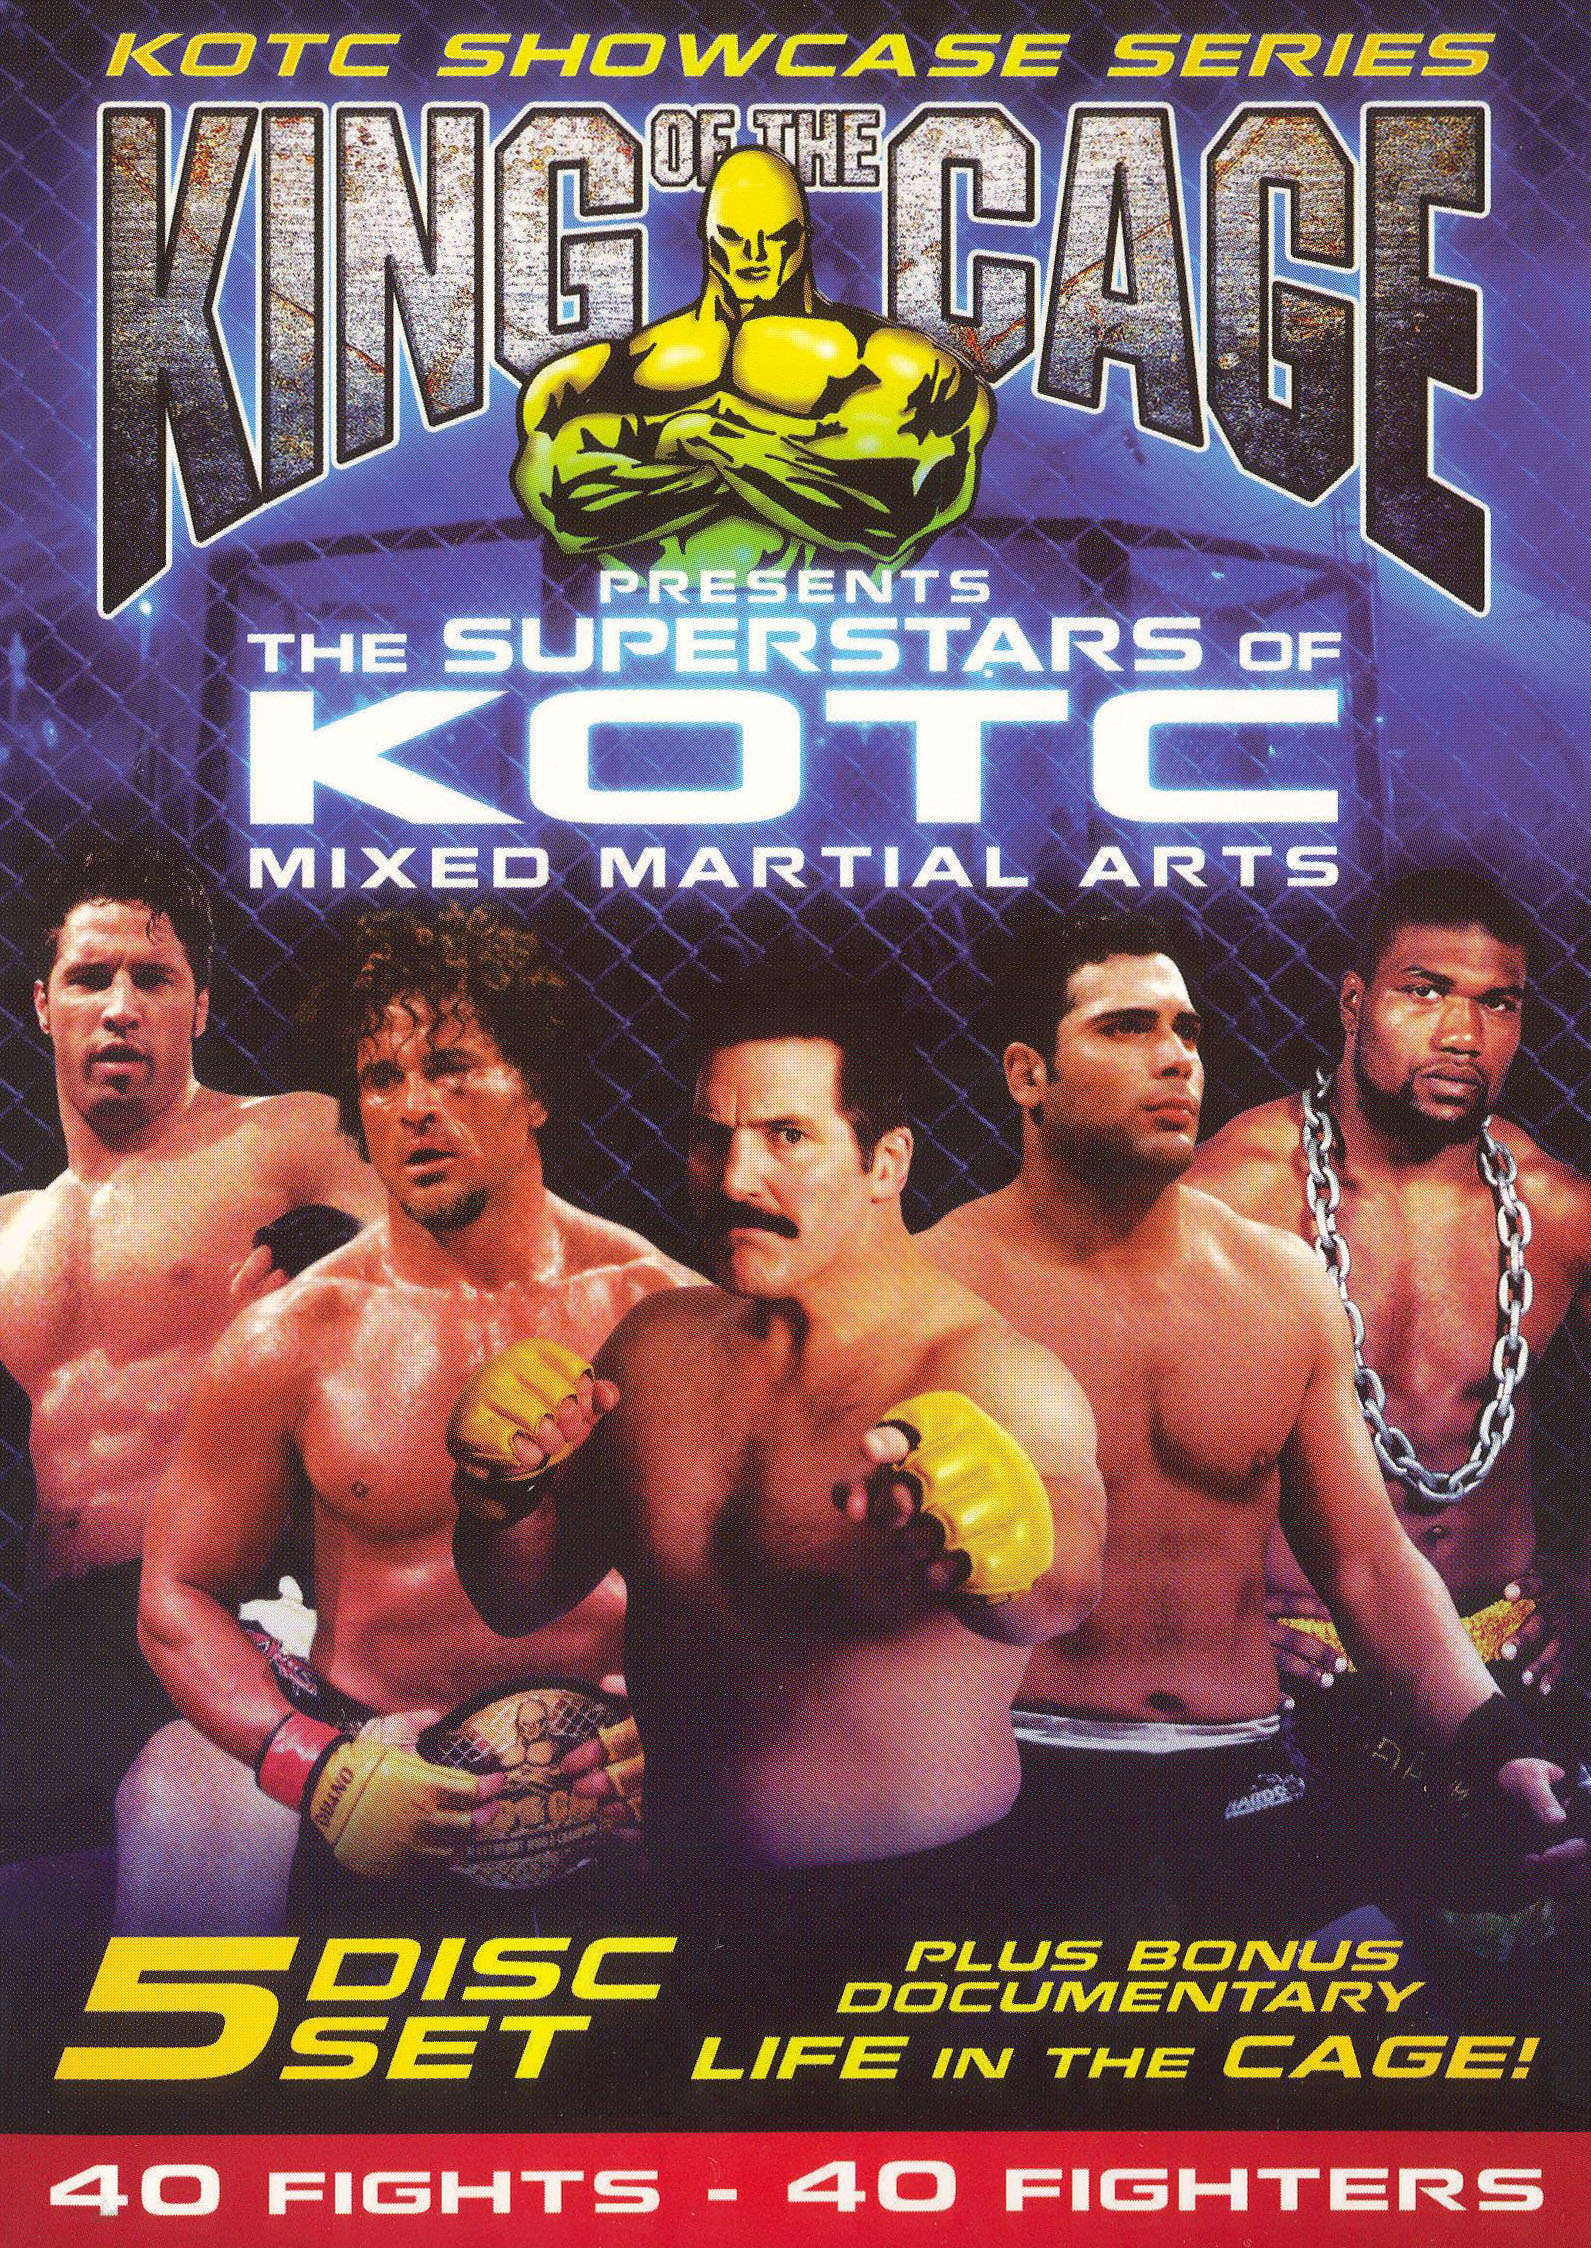 King of the Cage: The Superstars of KOTC - This Is the Evolution of Combat!